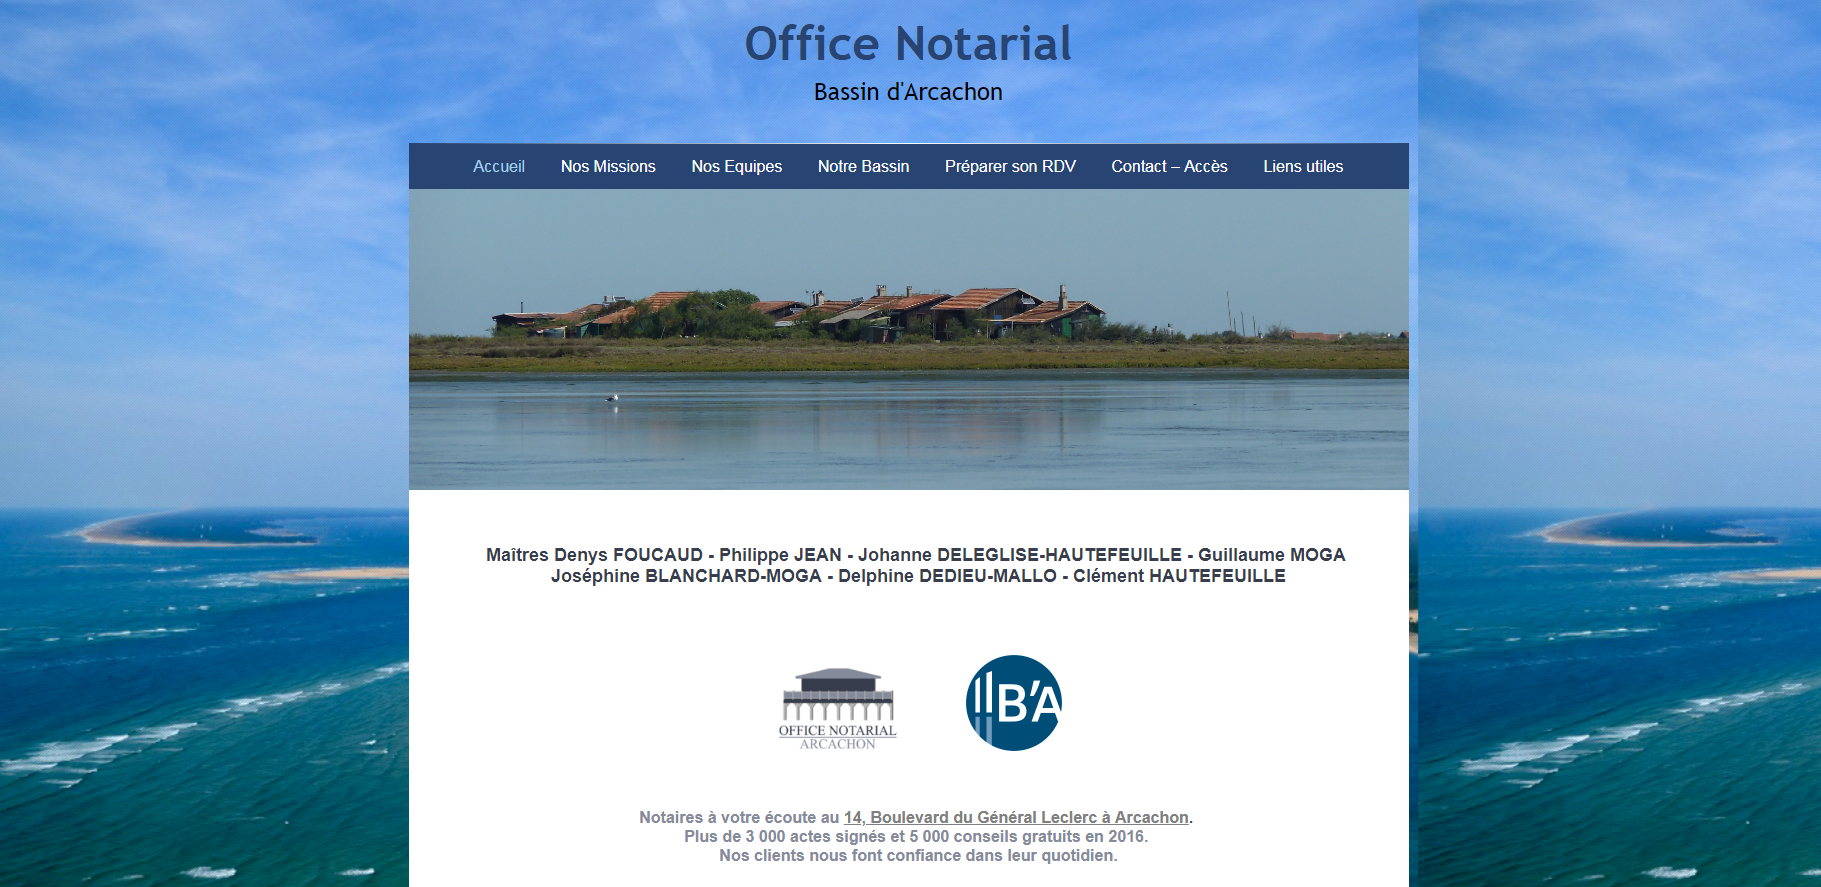 Office Notarial Bassin d'Arcachon